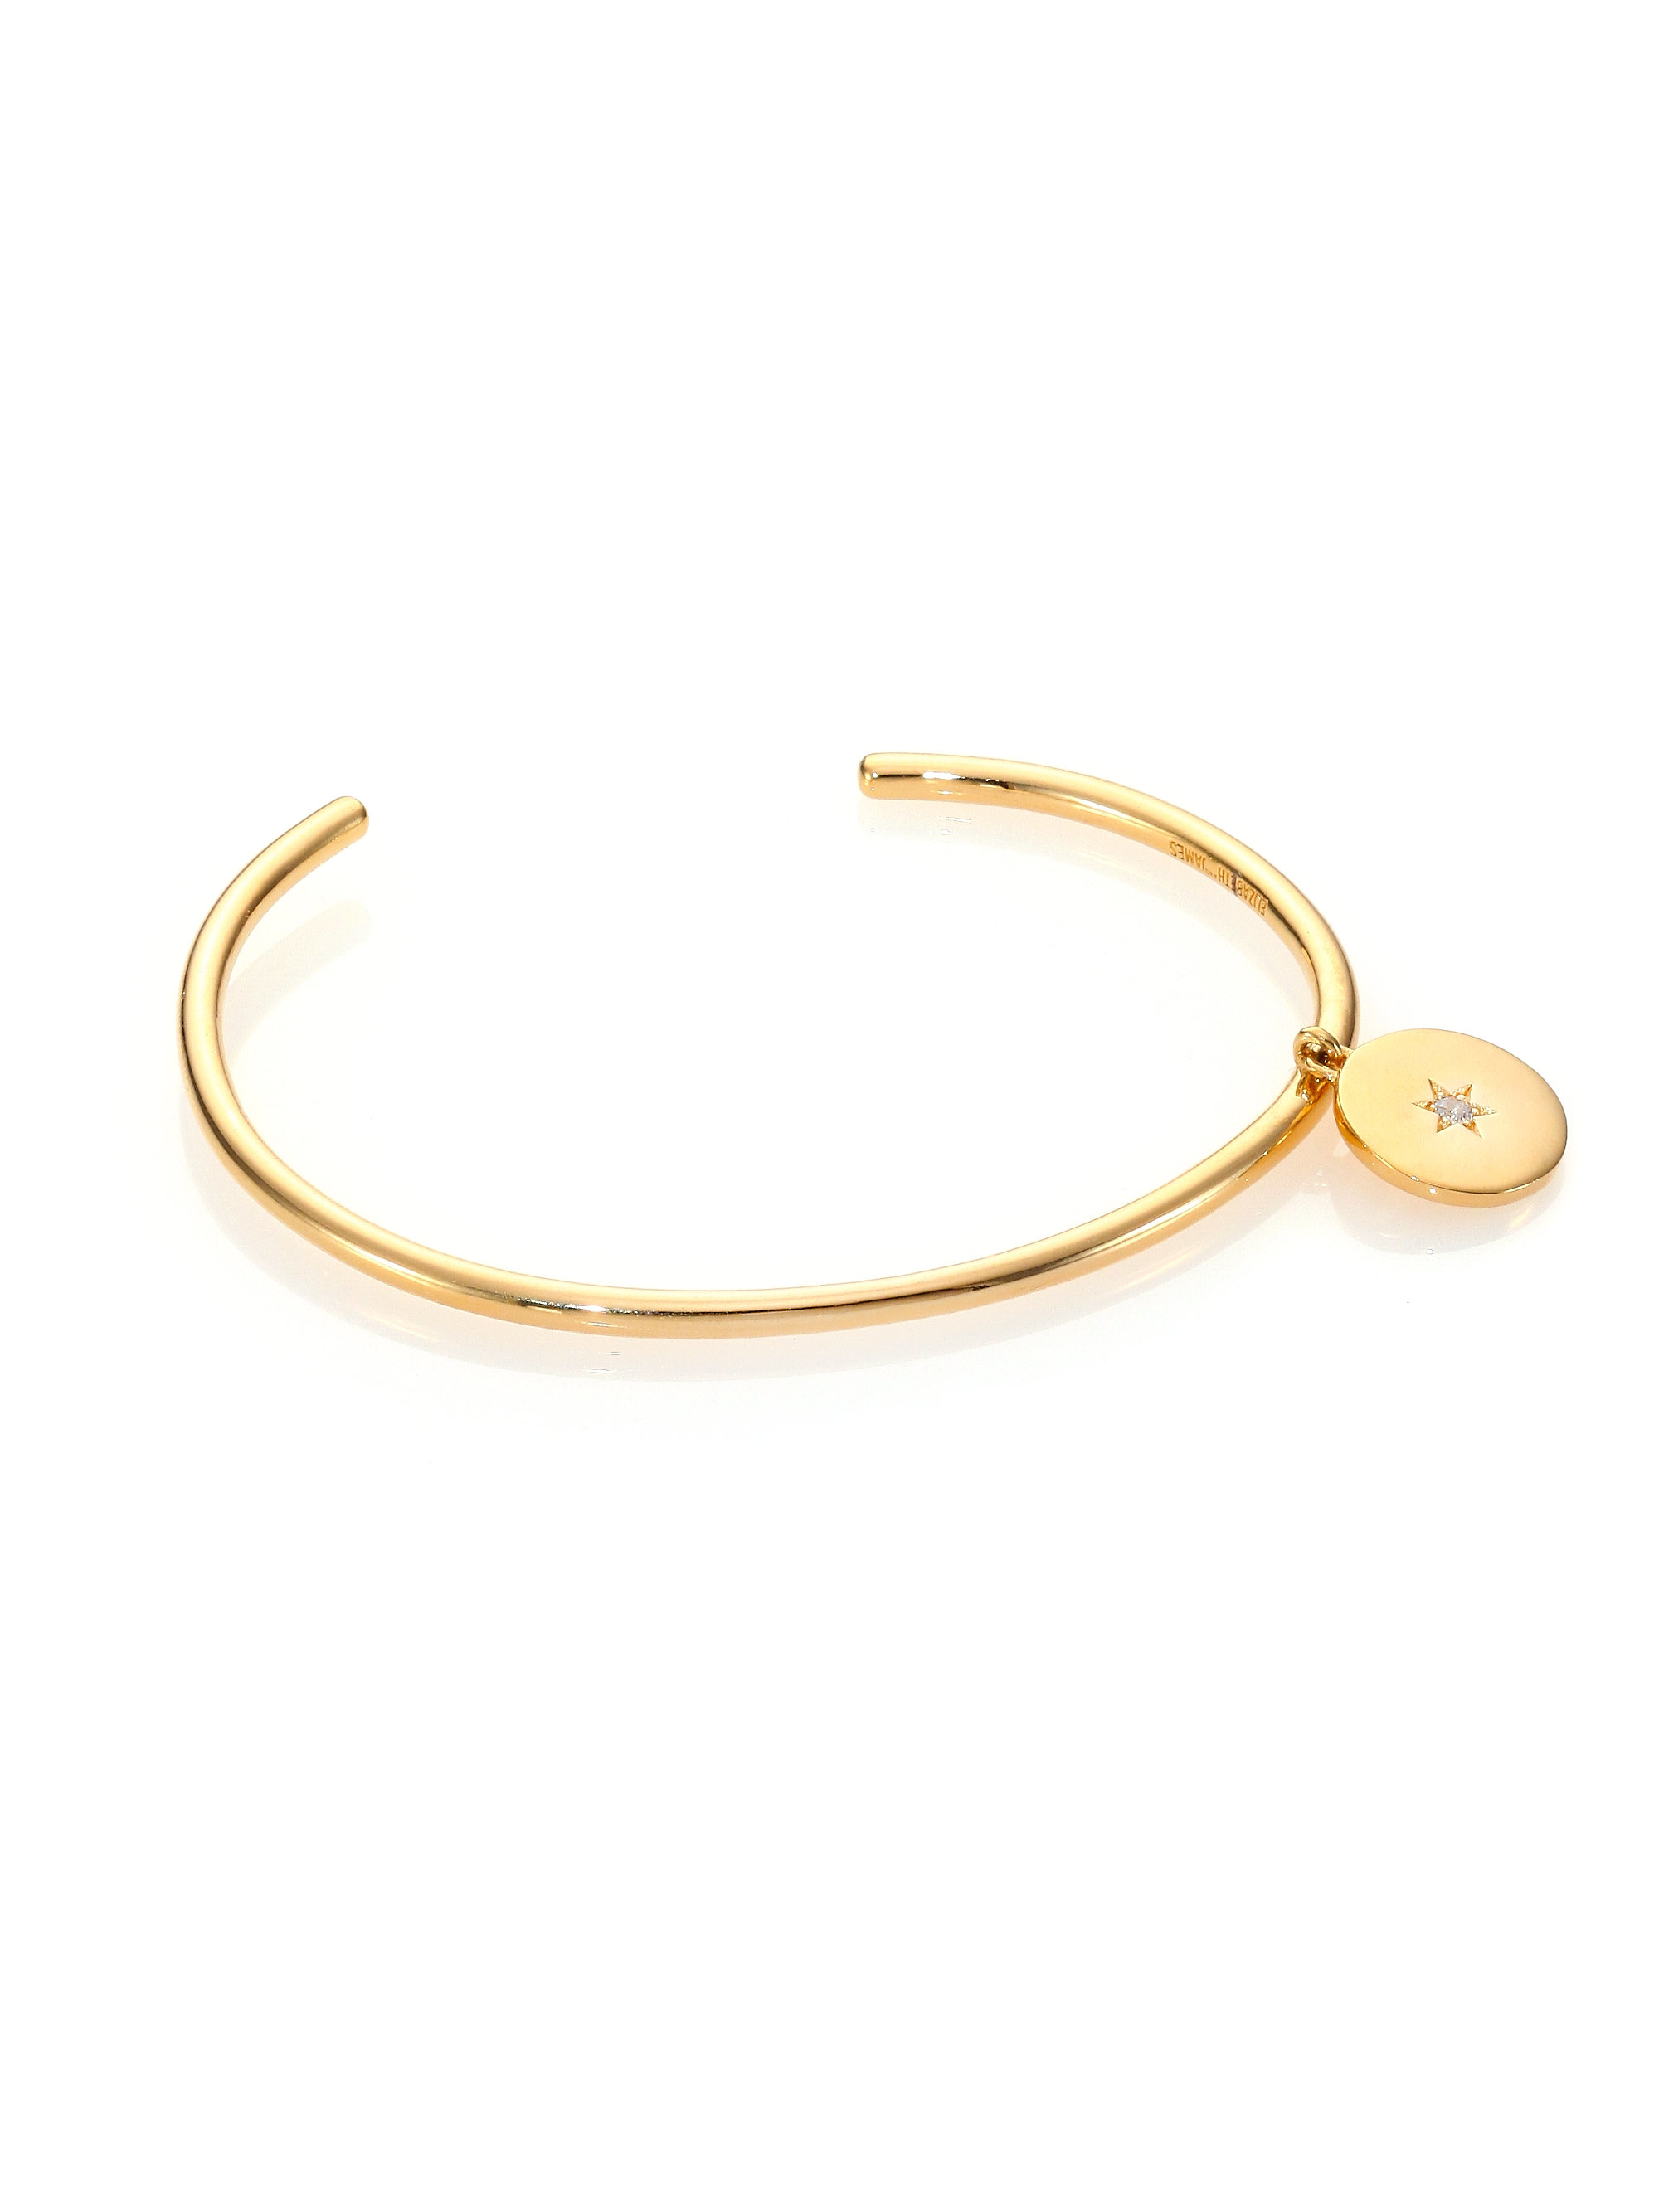 jewelry turnlock gold bracelets goldtone charm tone gallery bracelet bangle new black thin product spade york normal lyst bangles kate